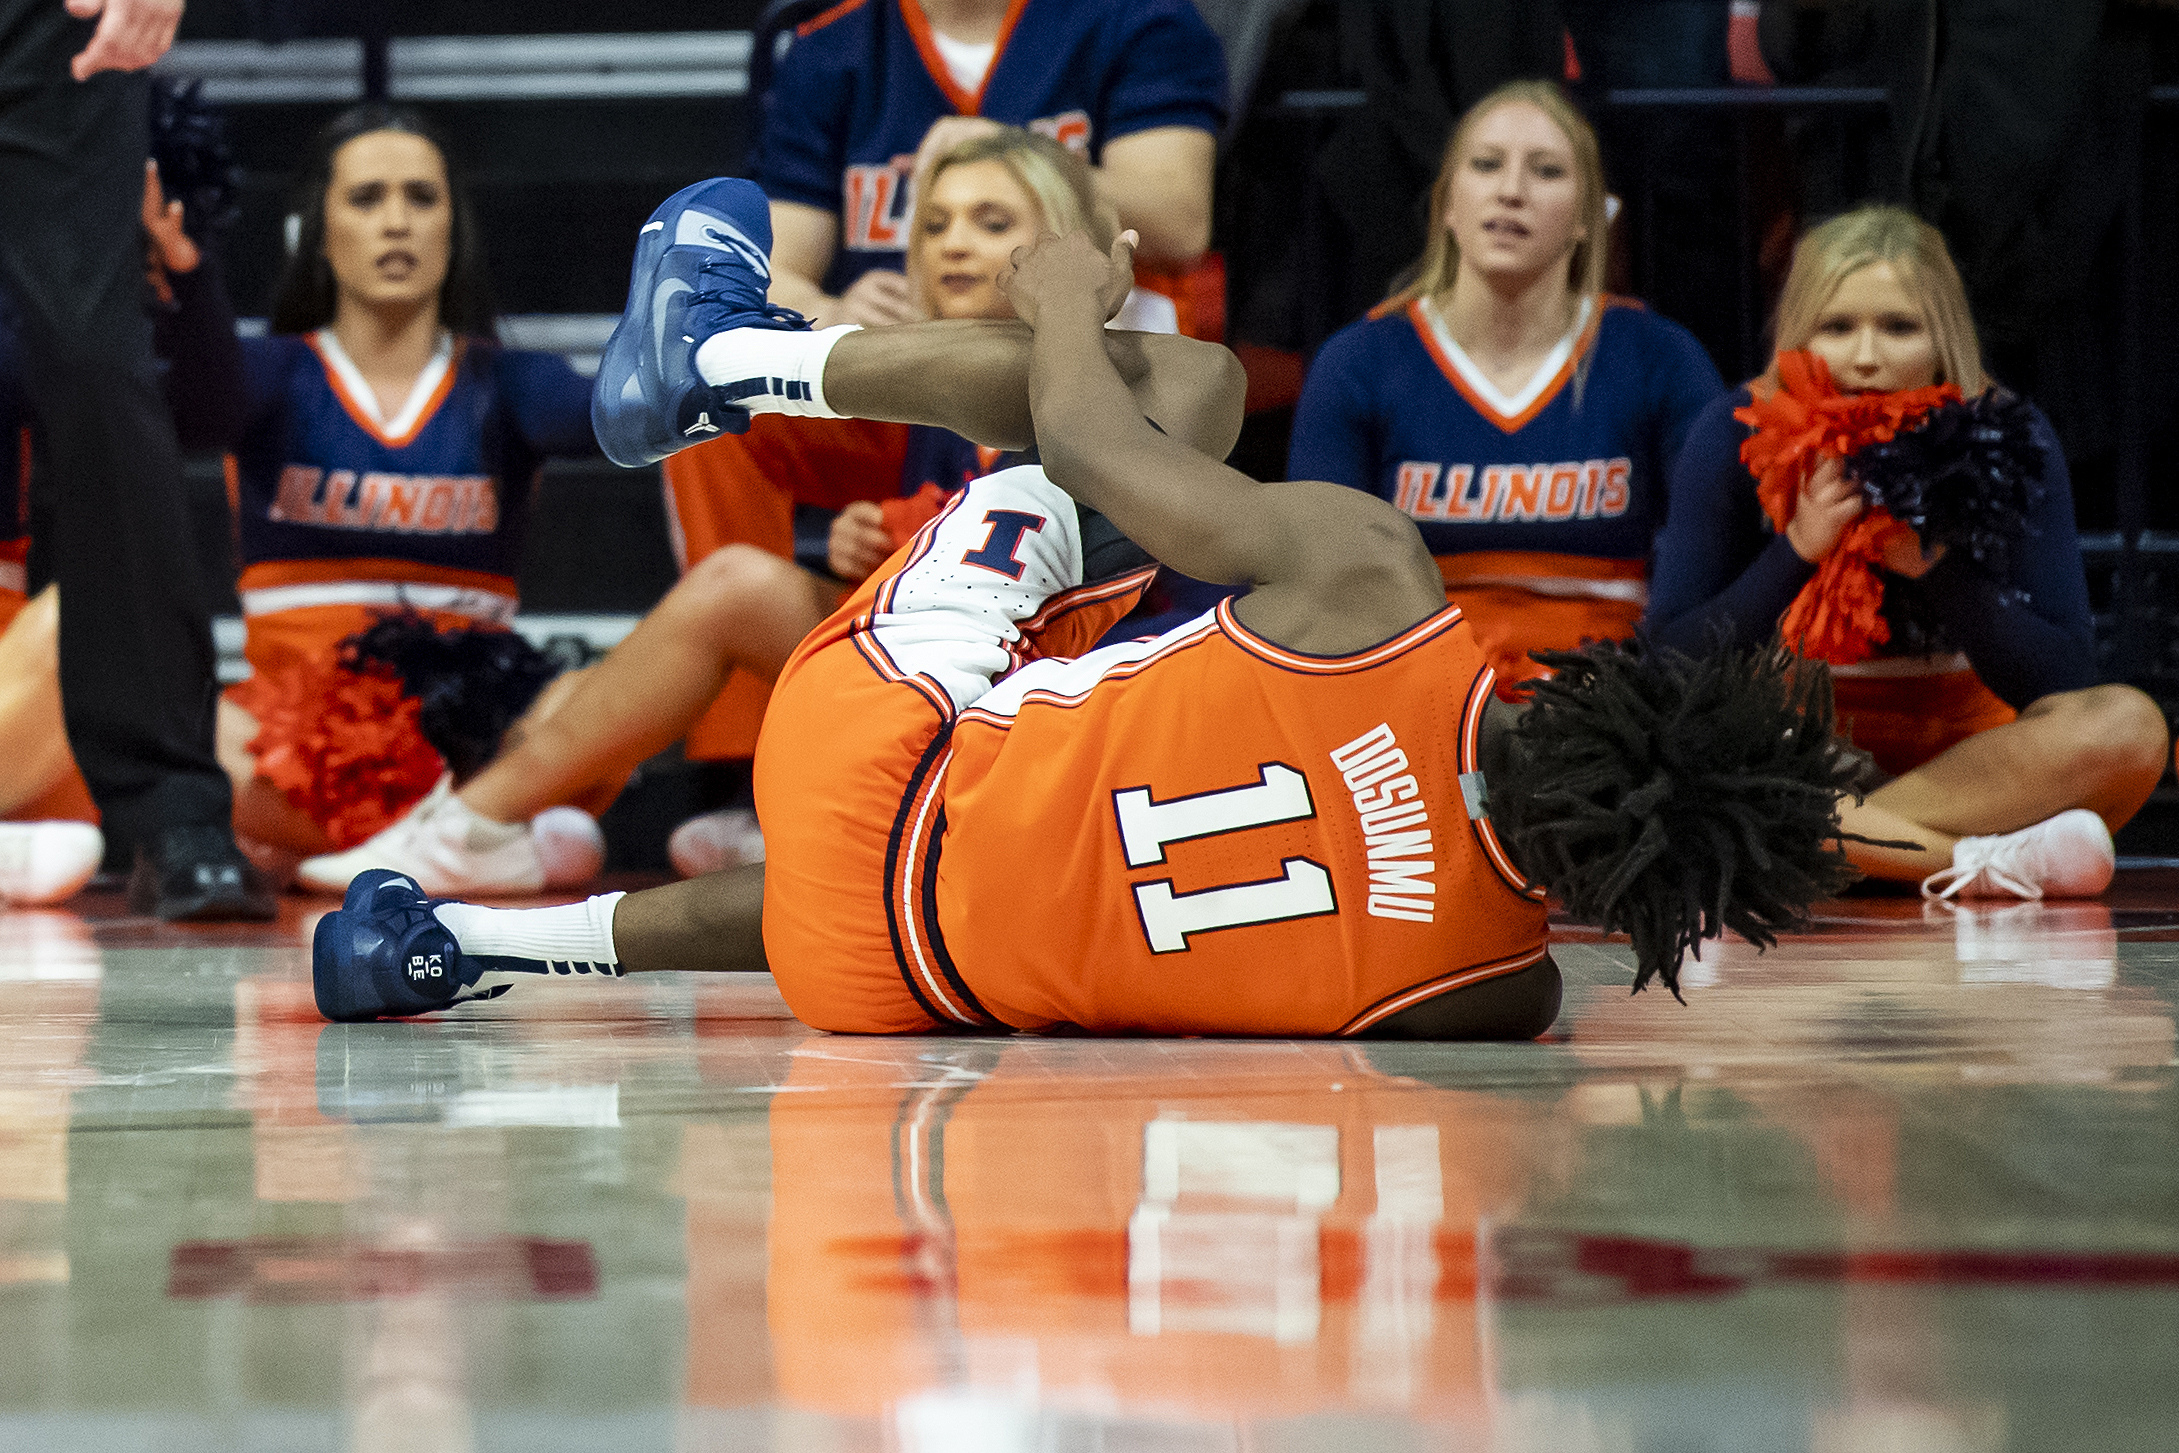 Illinois Fighting Illini guard Ayo Dosunmu reacts after a last second game injury against the Michigan State Spartans at State Farm Center.